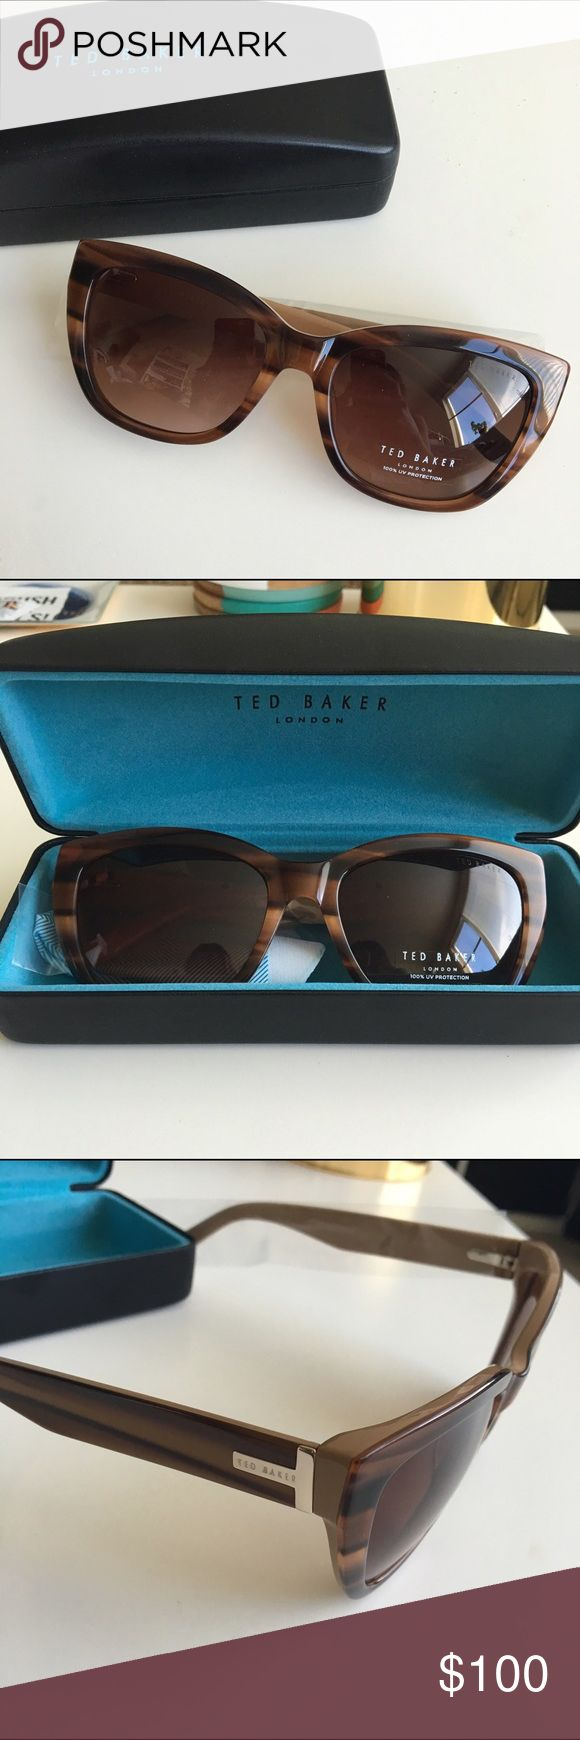 Selling this ⏰LAST CHANCE⌛️ NWT Ted Baker cat eye sunglasses on Poshmark! My username is: wanderlust15. #shopmycloset #poshmark #fashion #shopping #style #forsale #Ted Baker #Accessories